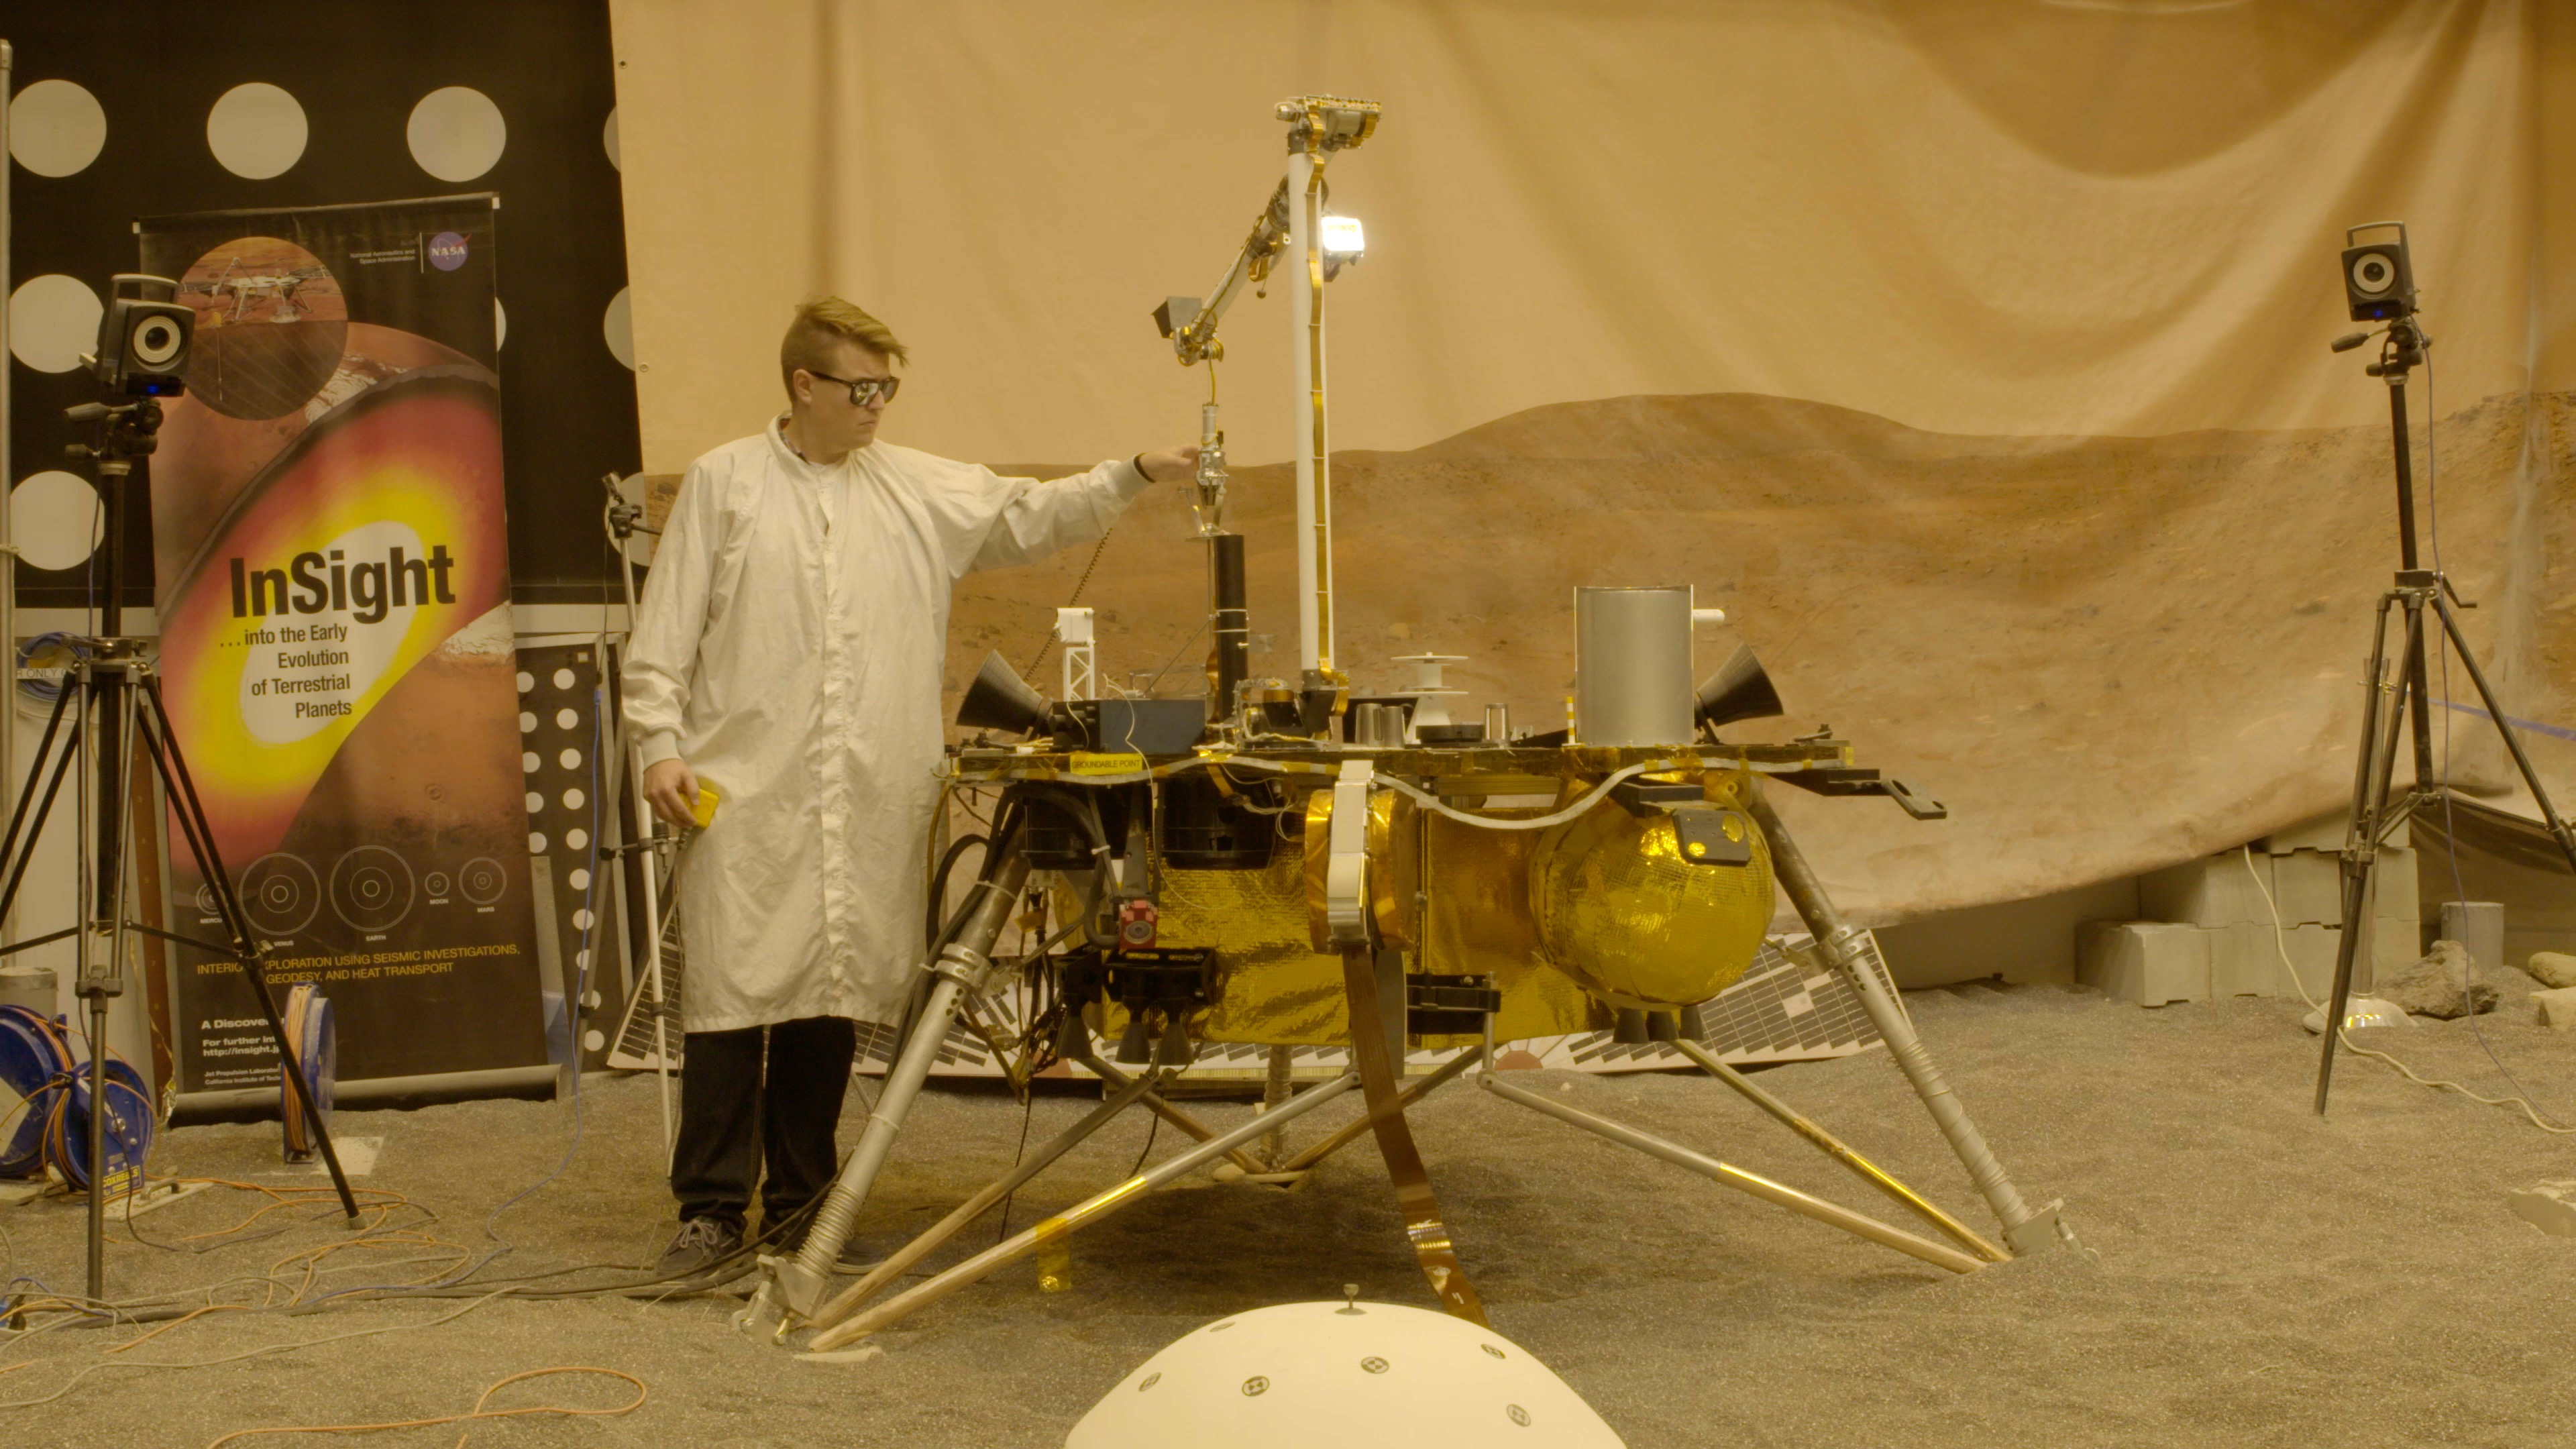 see the image 'Engineering For Mars: InSight Mission Test Lab (360 Video)'